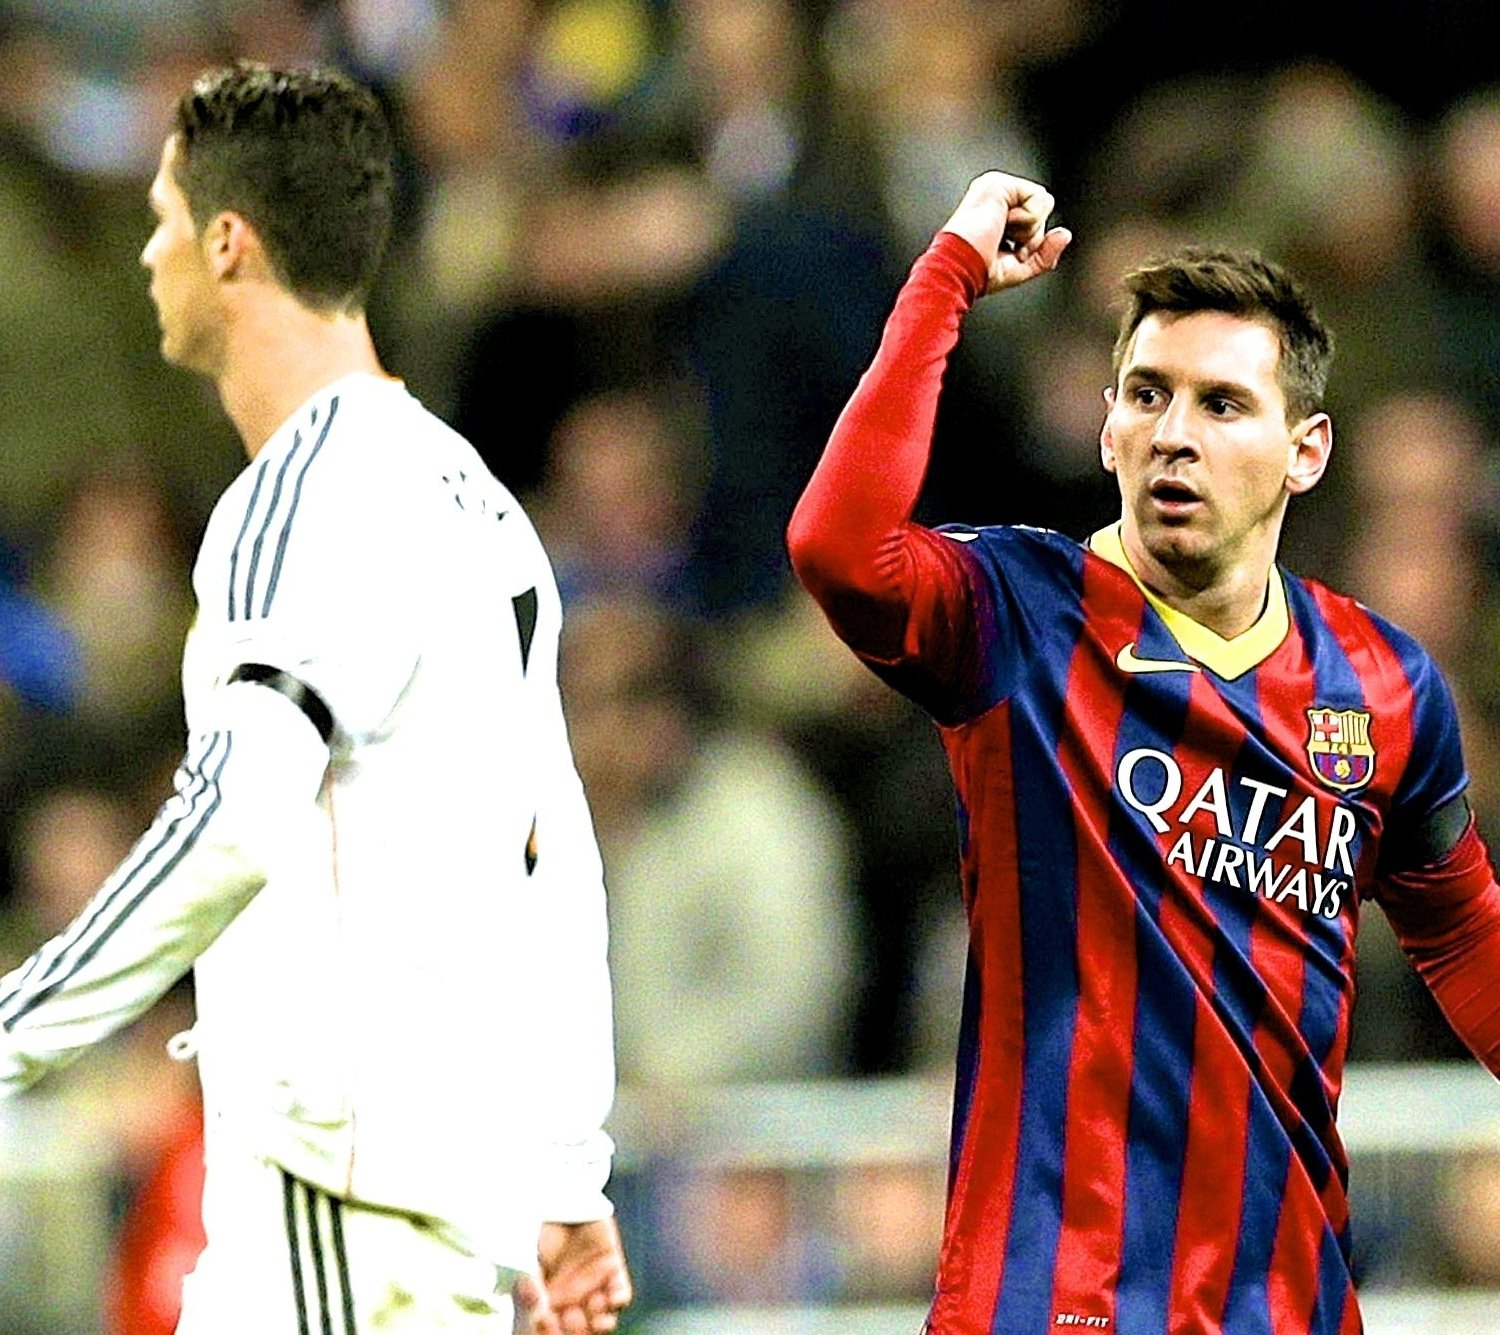 Cristiano Ronaldo I M Not Playing Just Lionel Messi: Balague: Messi, Not Ronaldo, Only Player Worth €150M In